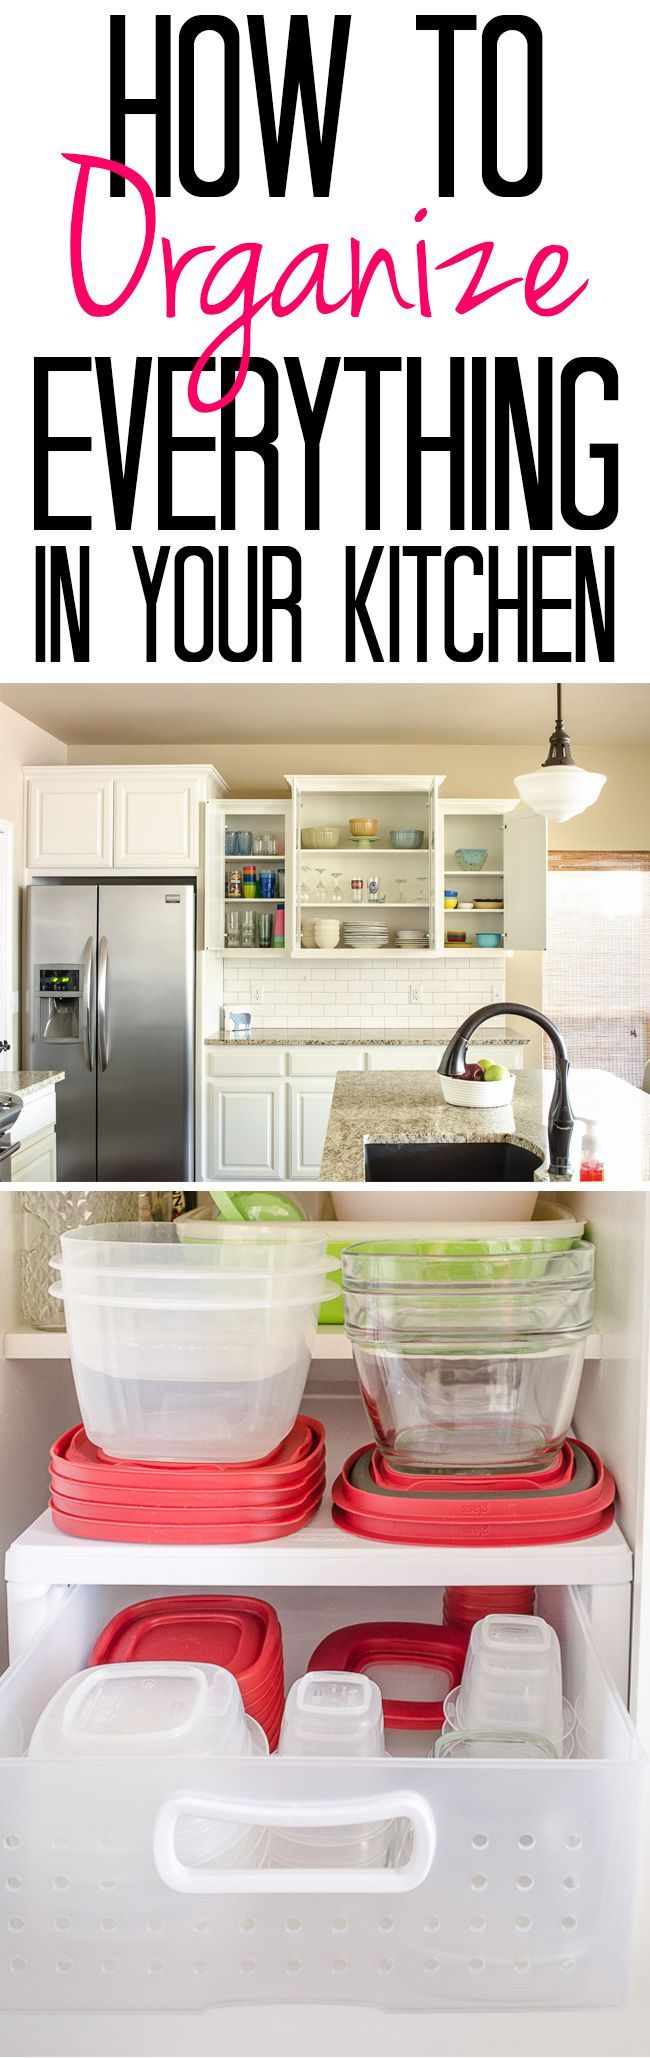 246 best Organized Home images on Pinterest | Kitchen ideas ...